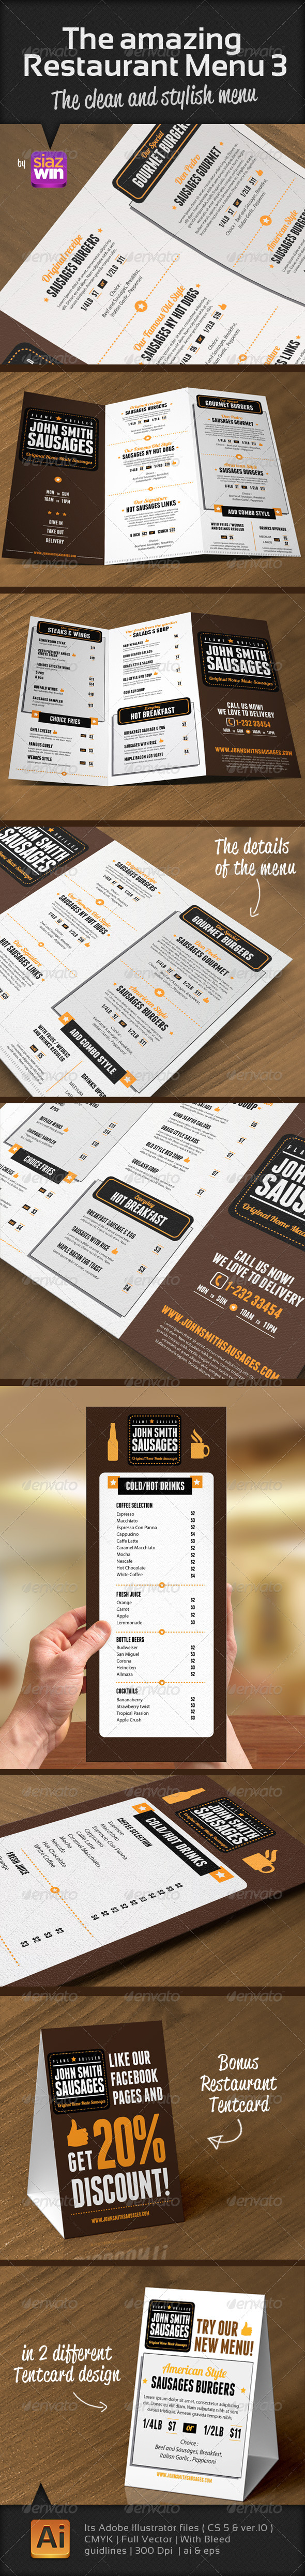 The Restaurant Menu 3 - Food Menus Print Templates